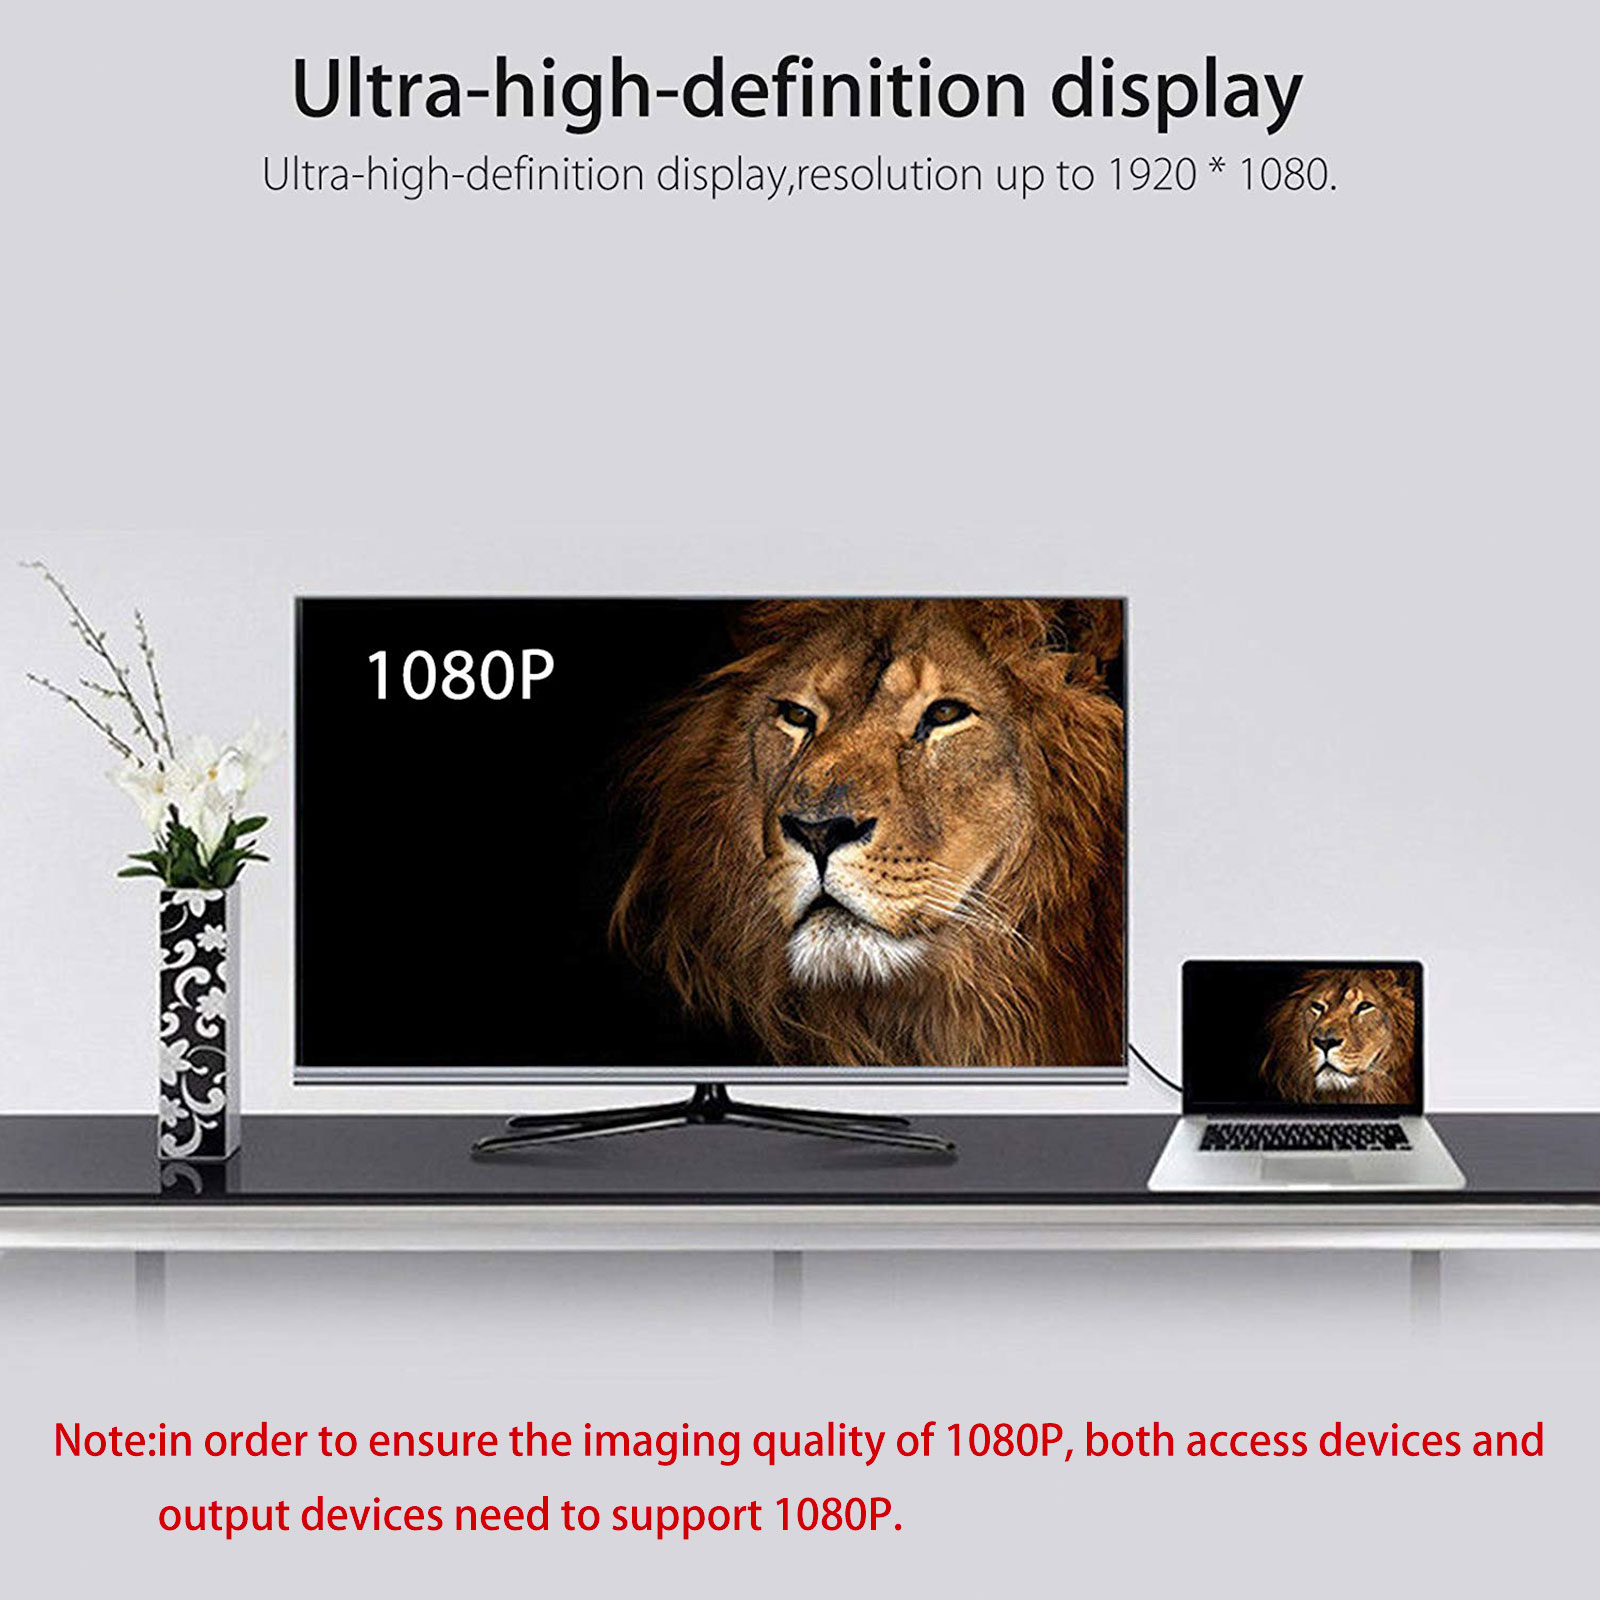 HD-1080P-HDMI-to-USB-3-0-Video-Cable-Adapter-Converter-For-PC-Laptop-HDTV-LCD-TV thumbnail 3